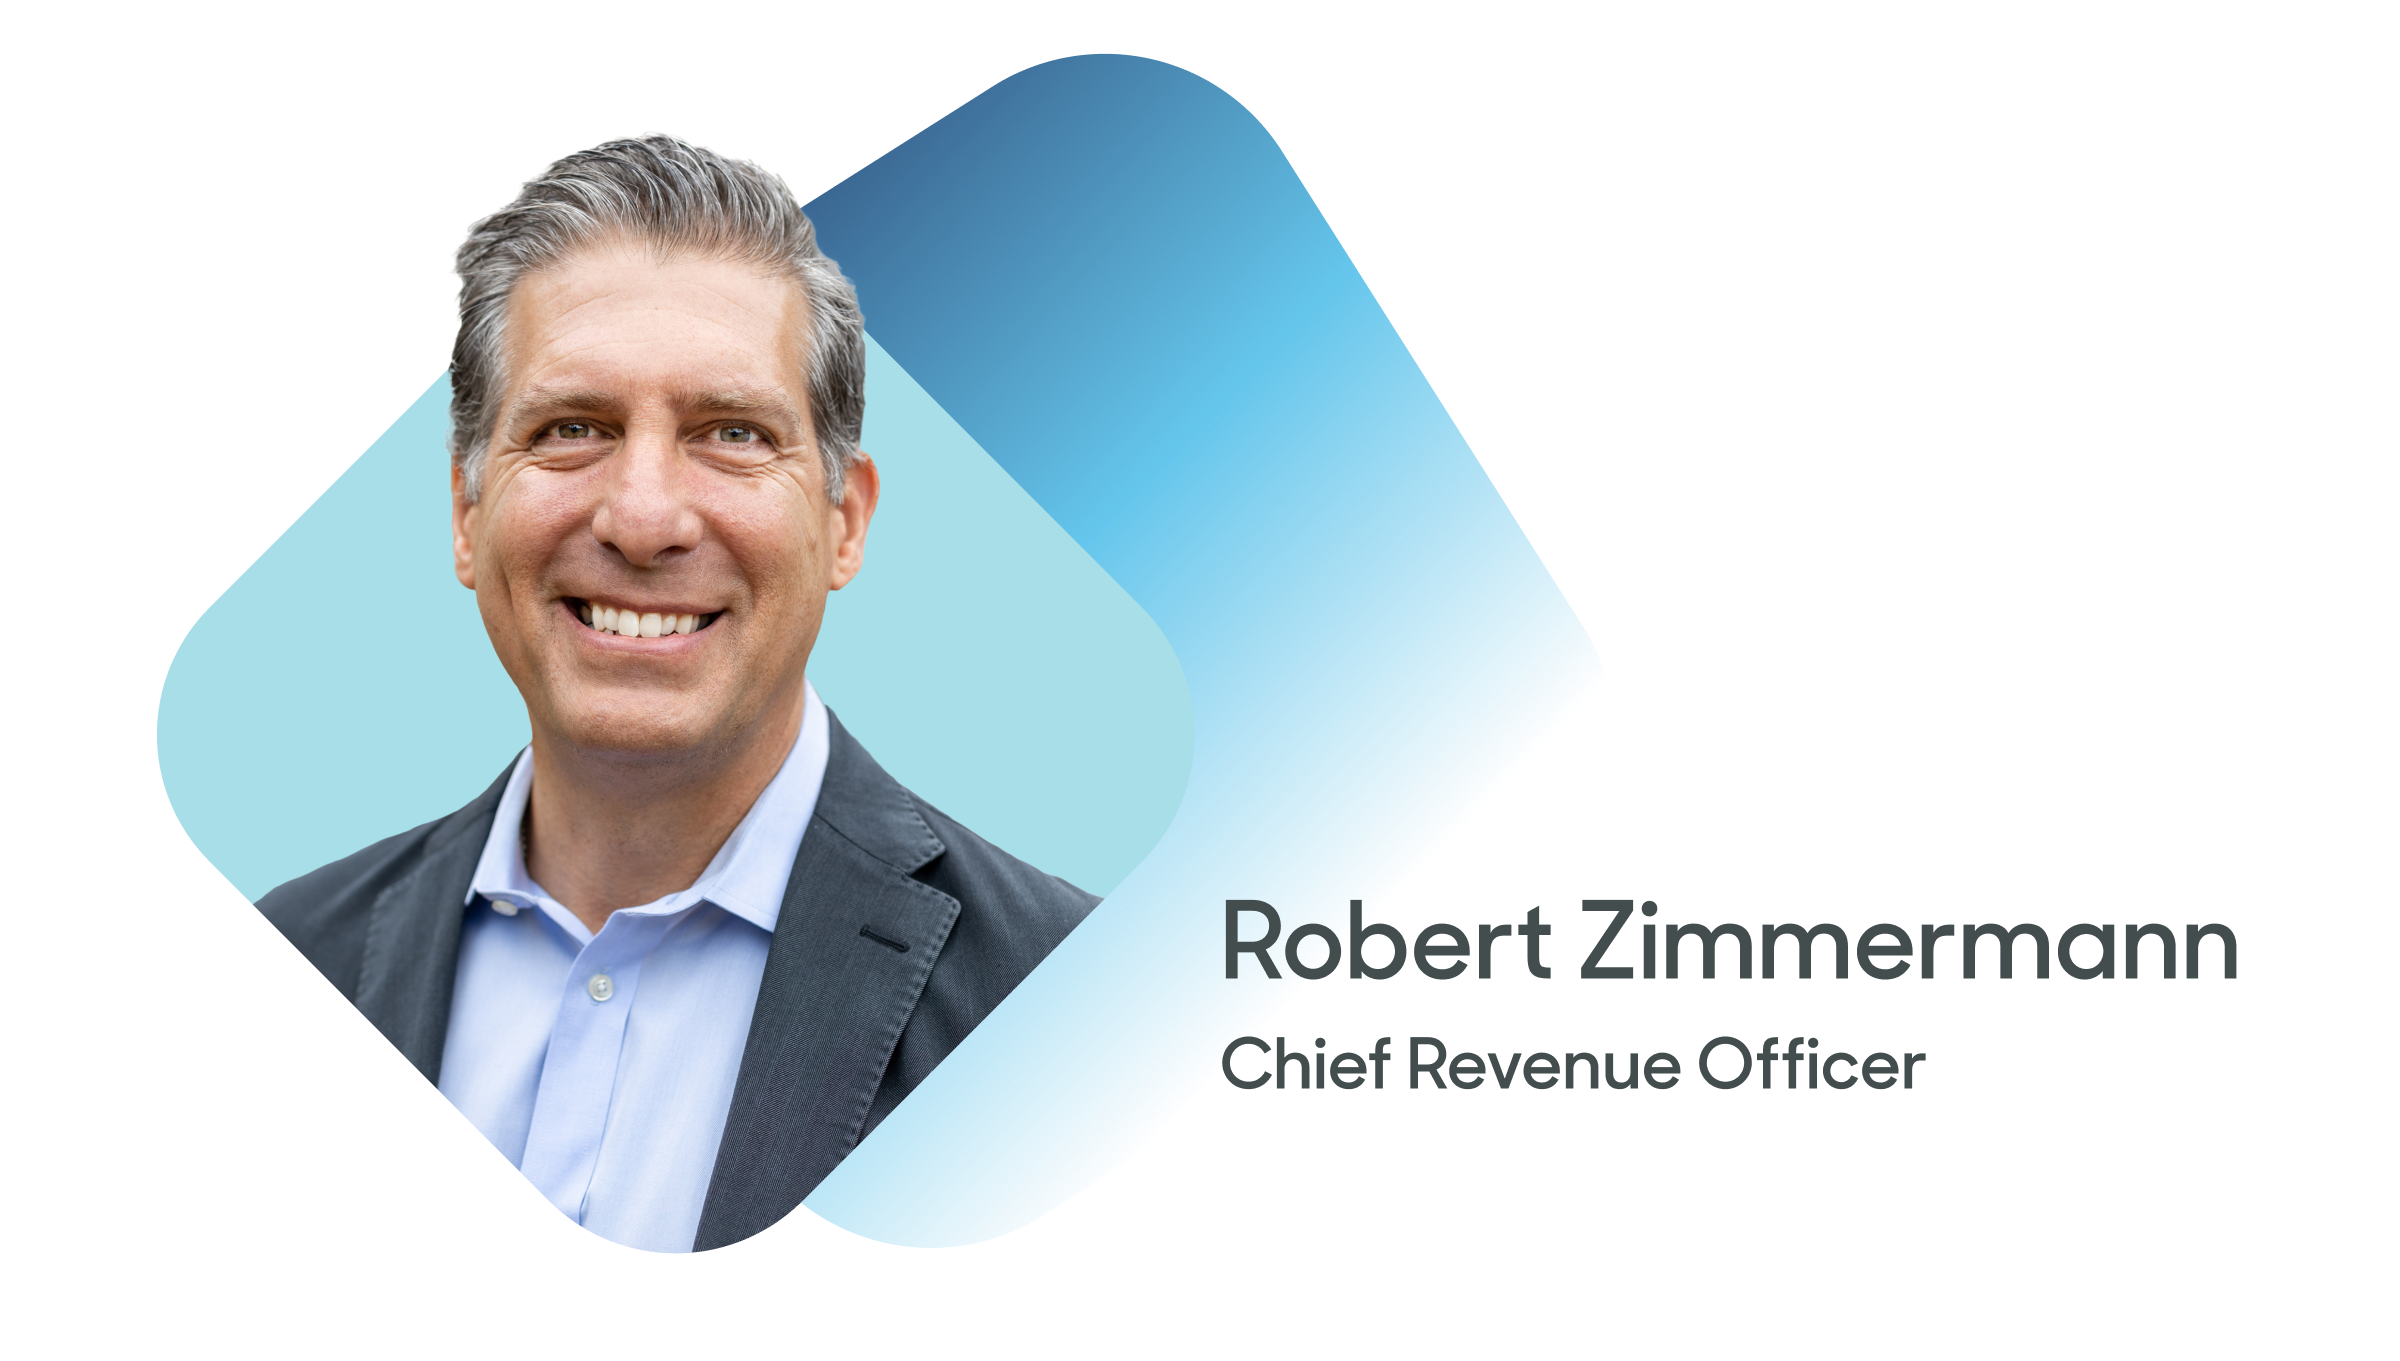 Robert Zimmermann Joins Salesforce-Backed Qualified as Chief Revenue Officer